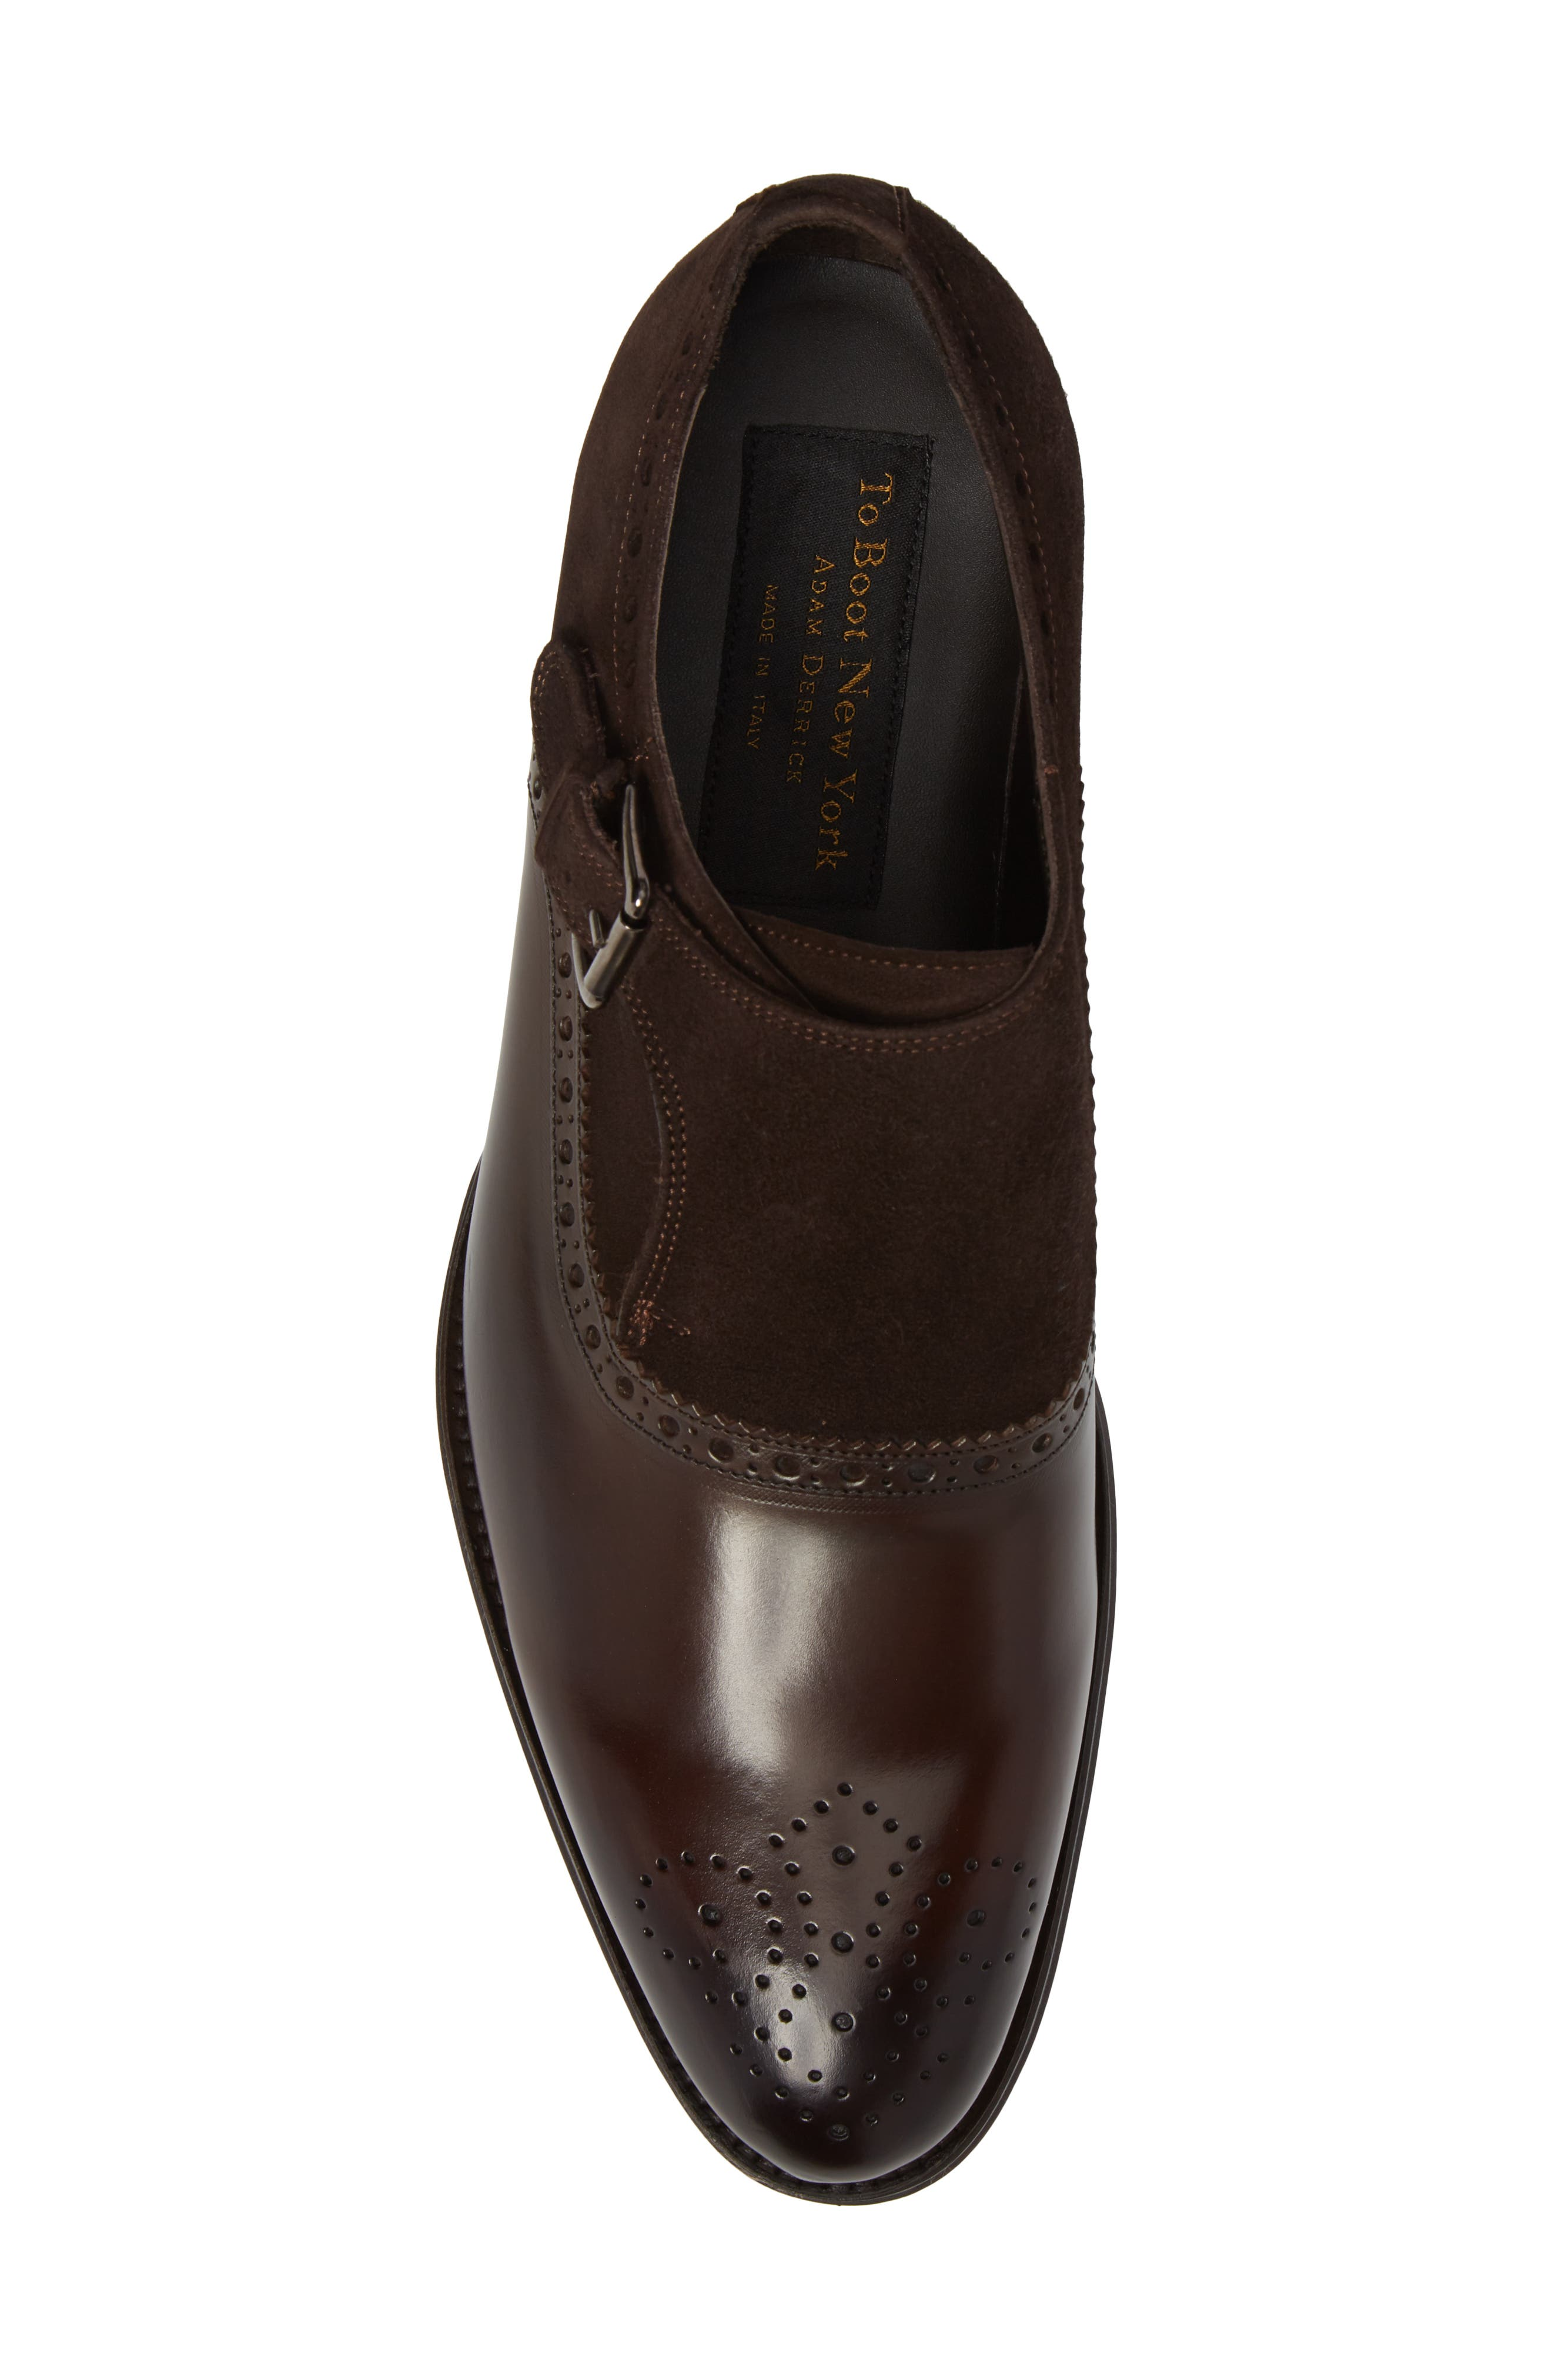 Arcadia Monk Strap Shoe,                             Alternate thumbnail 5, color,                             Brown Leather/ Suede